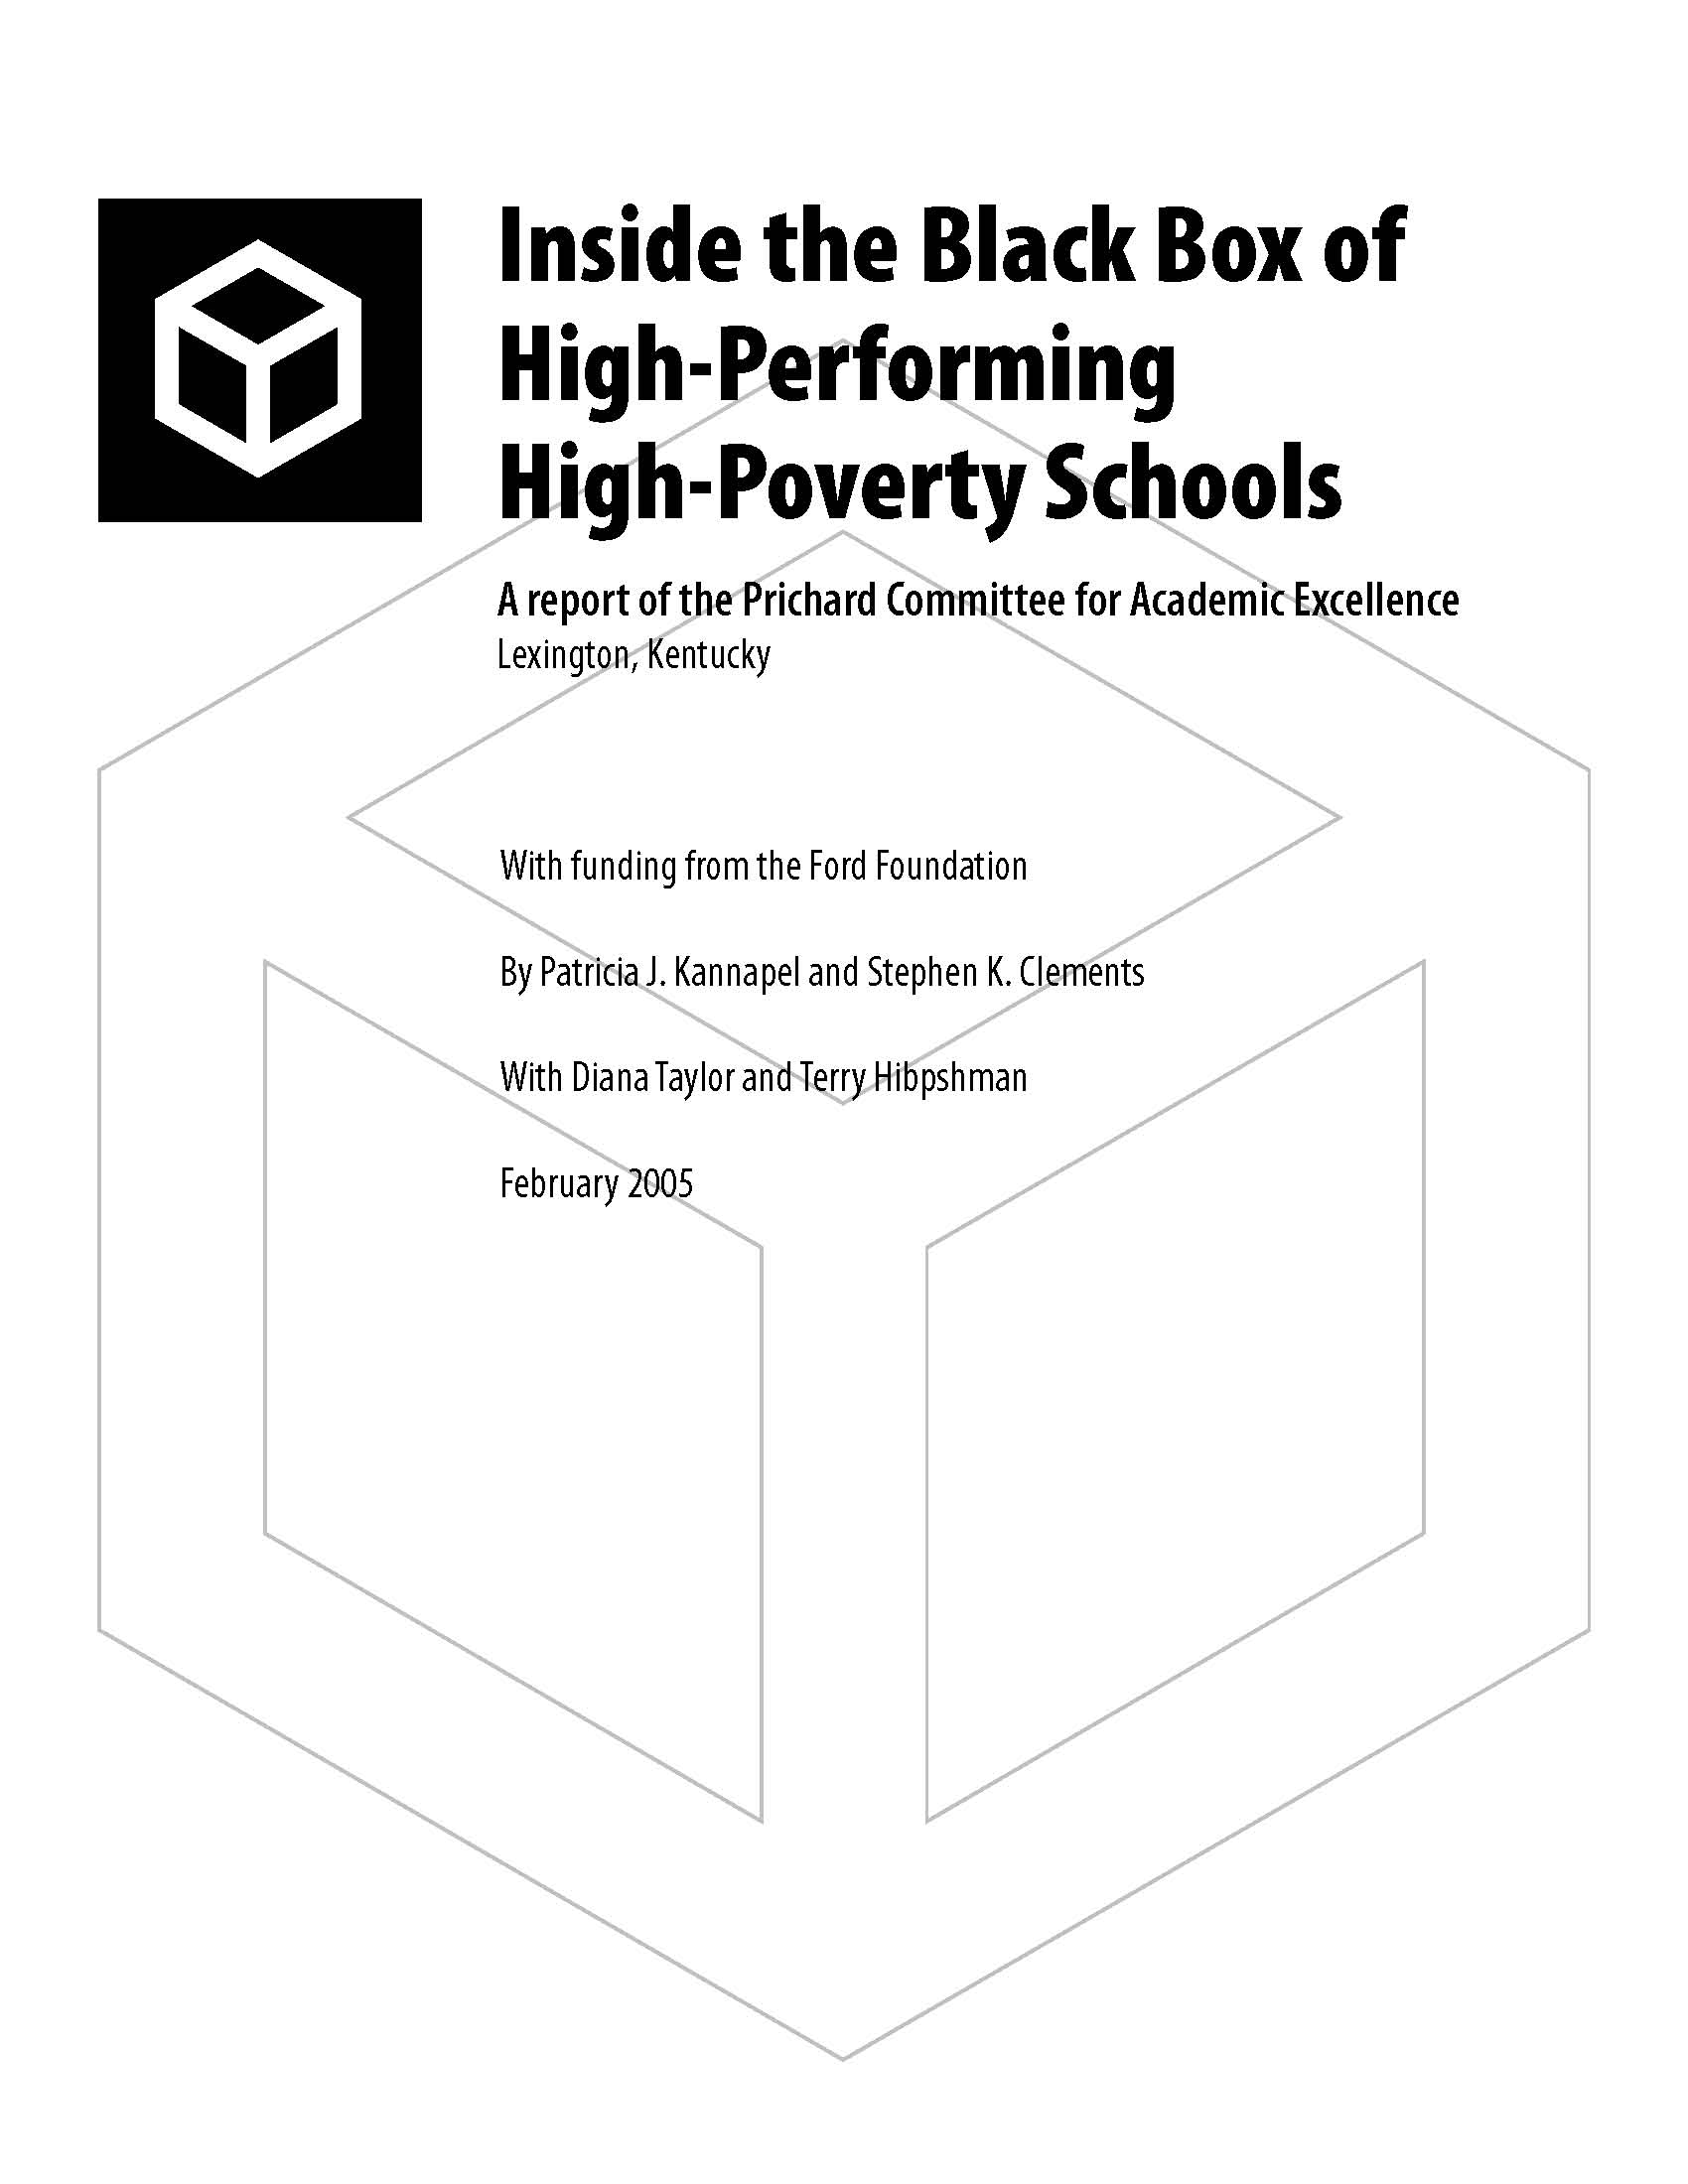 Inside the Black Box: High Performing, High Poverty